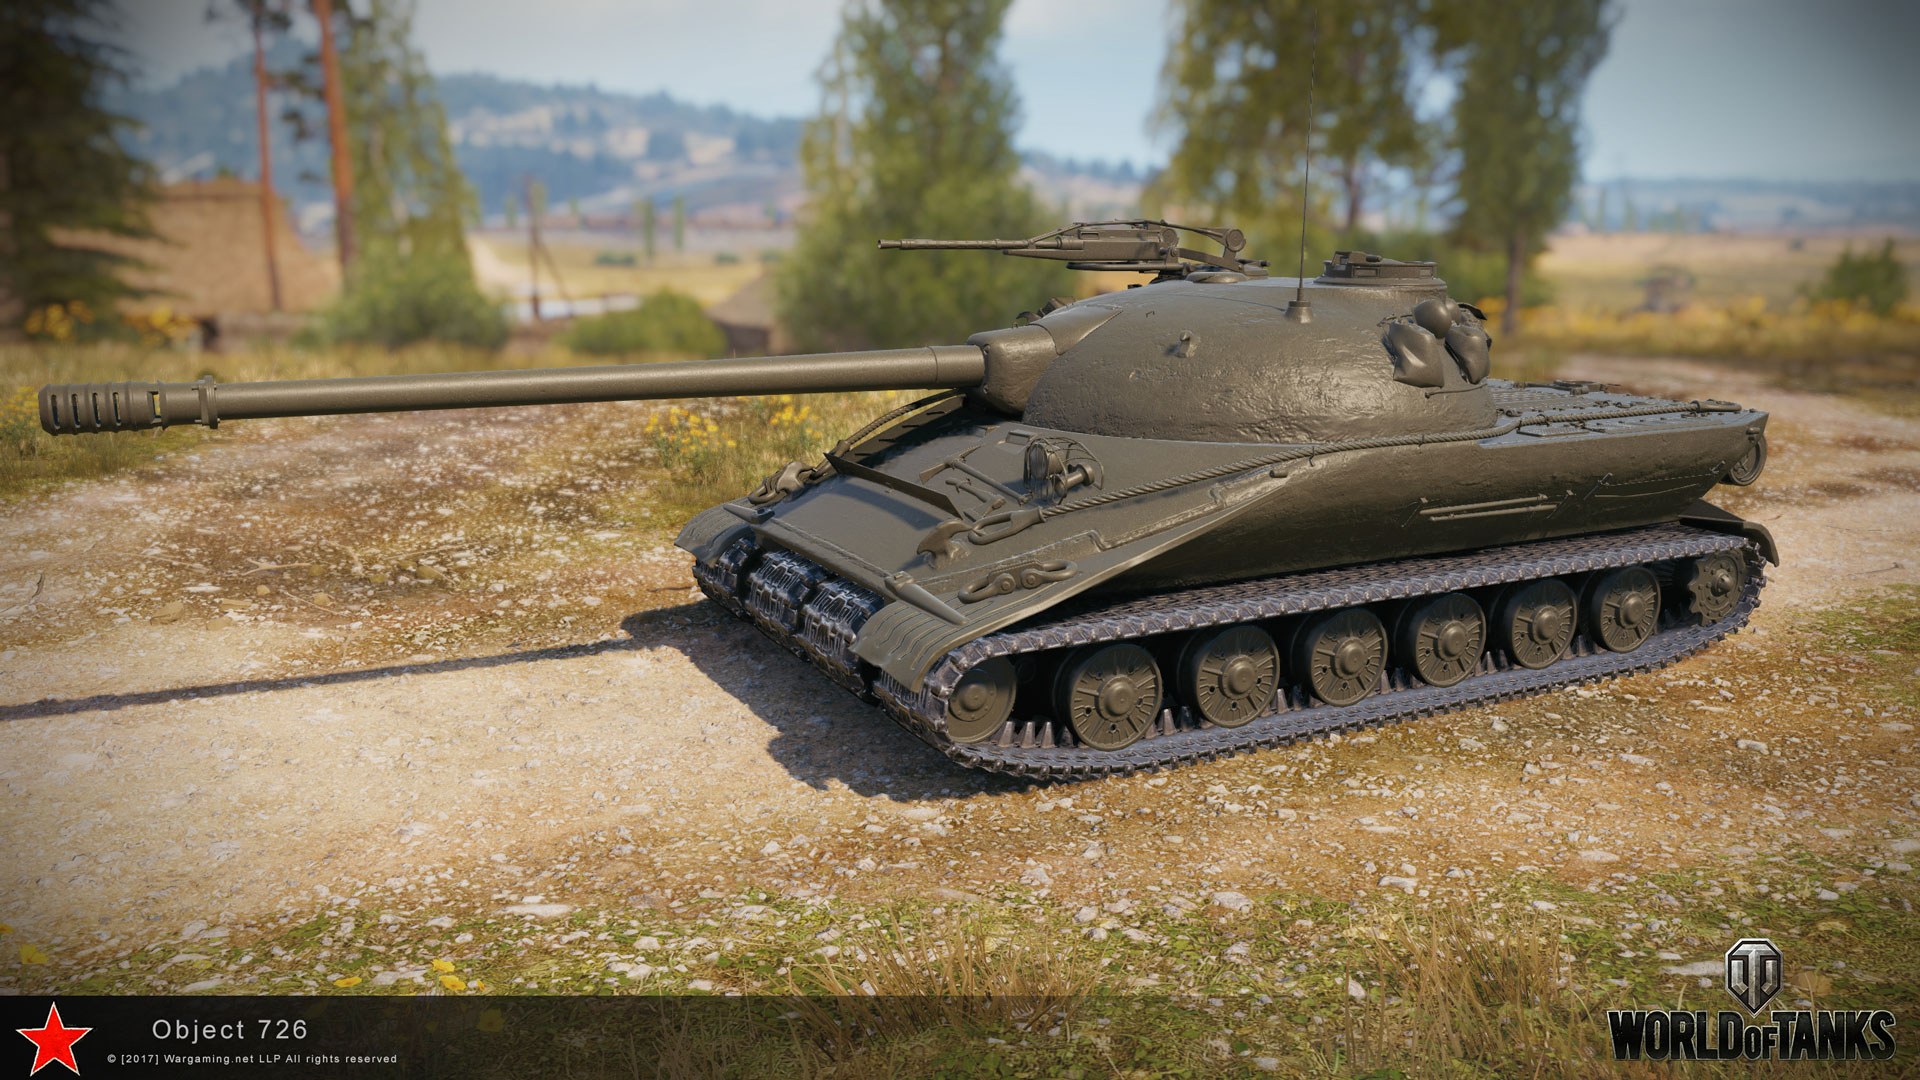 Object 726 Pictures